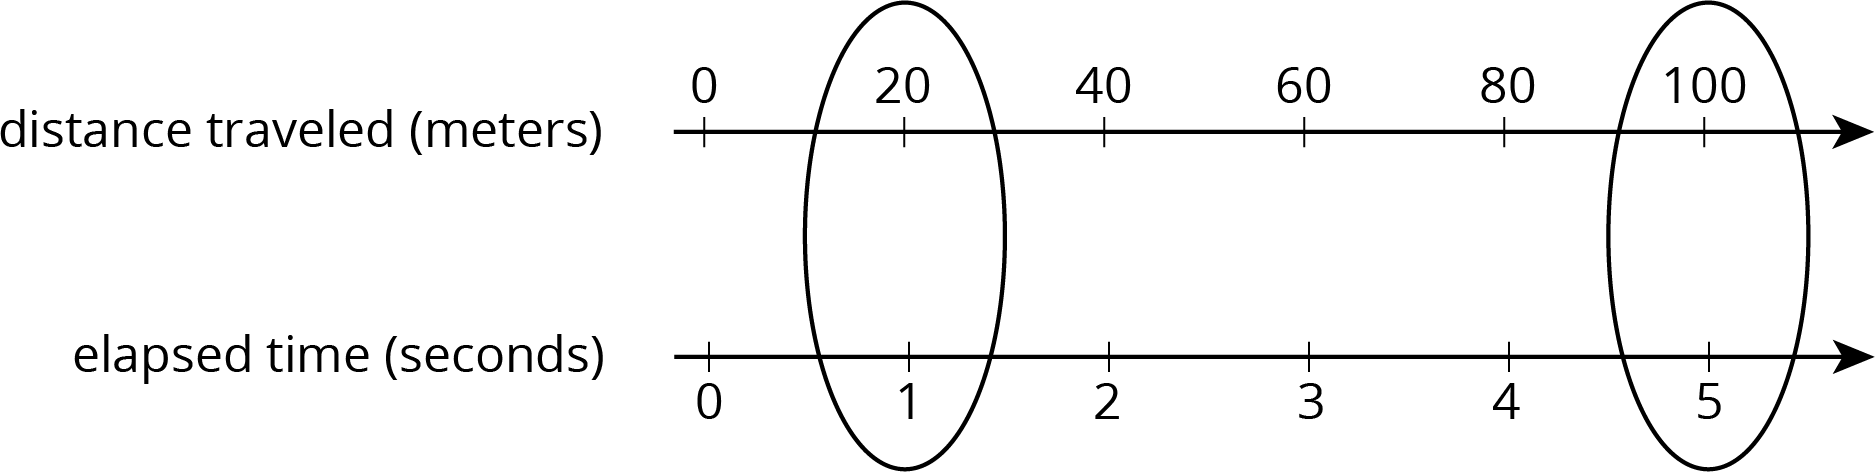 A double number line for meters of distance traveled: 0, 20, 40, 60, 80, 100 and seconds of elapsed time: 0, 1, 2, 3, 4, 5.